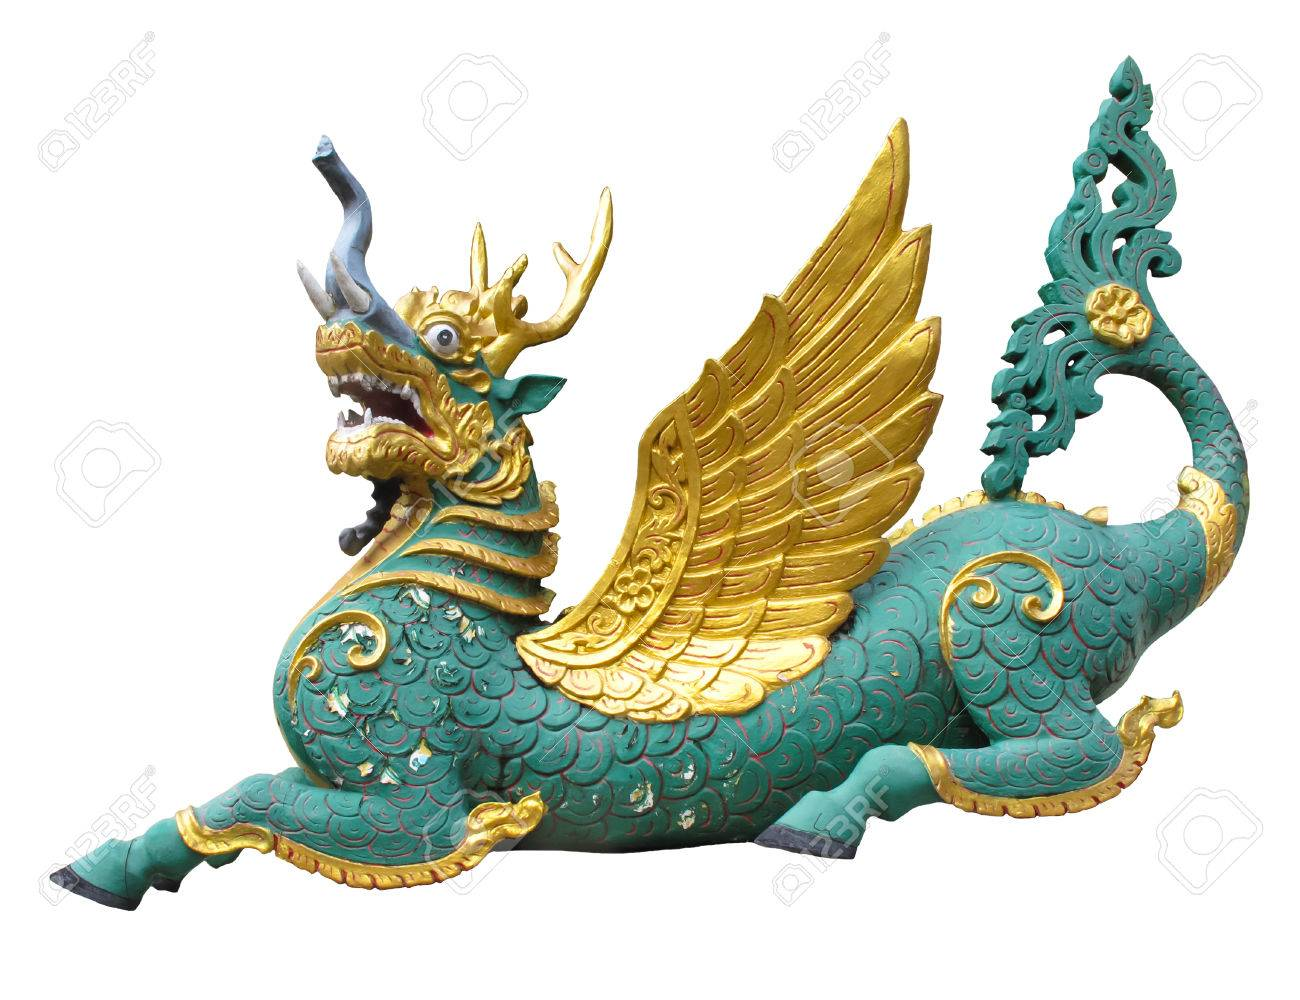 a colorful funny dragon the animals in thai literature or fantasy a colorful funny dragon the animals in thai literature or fantasy story part of body